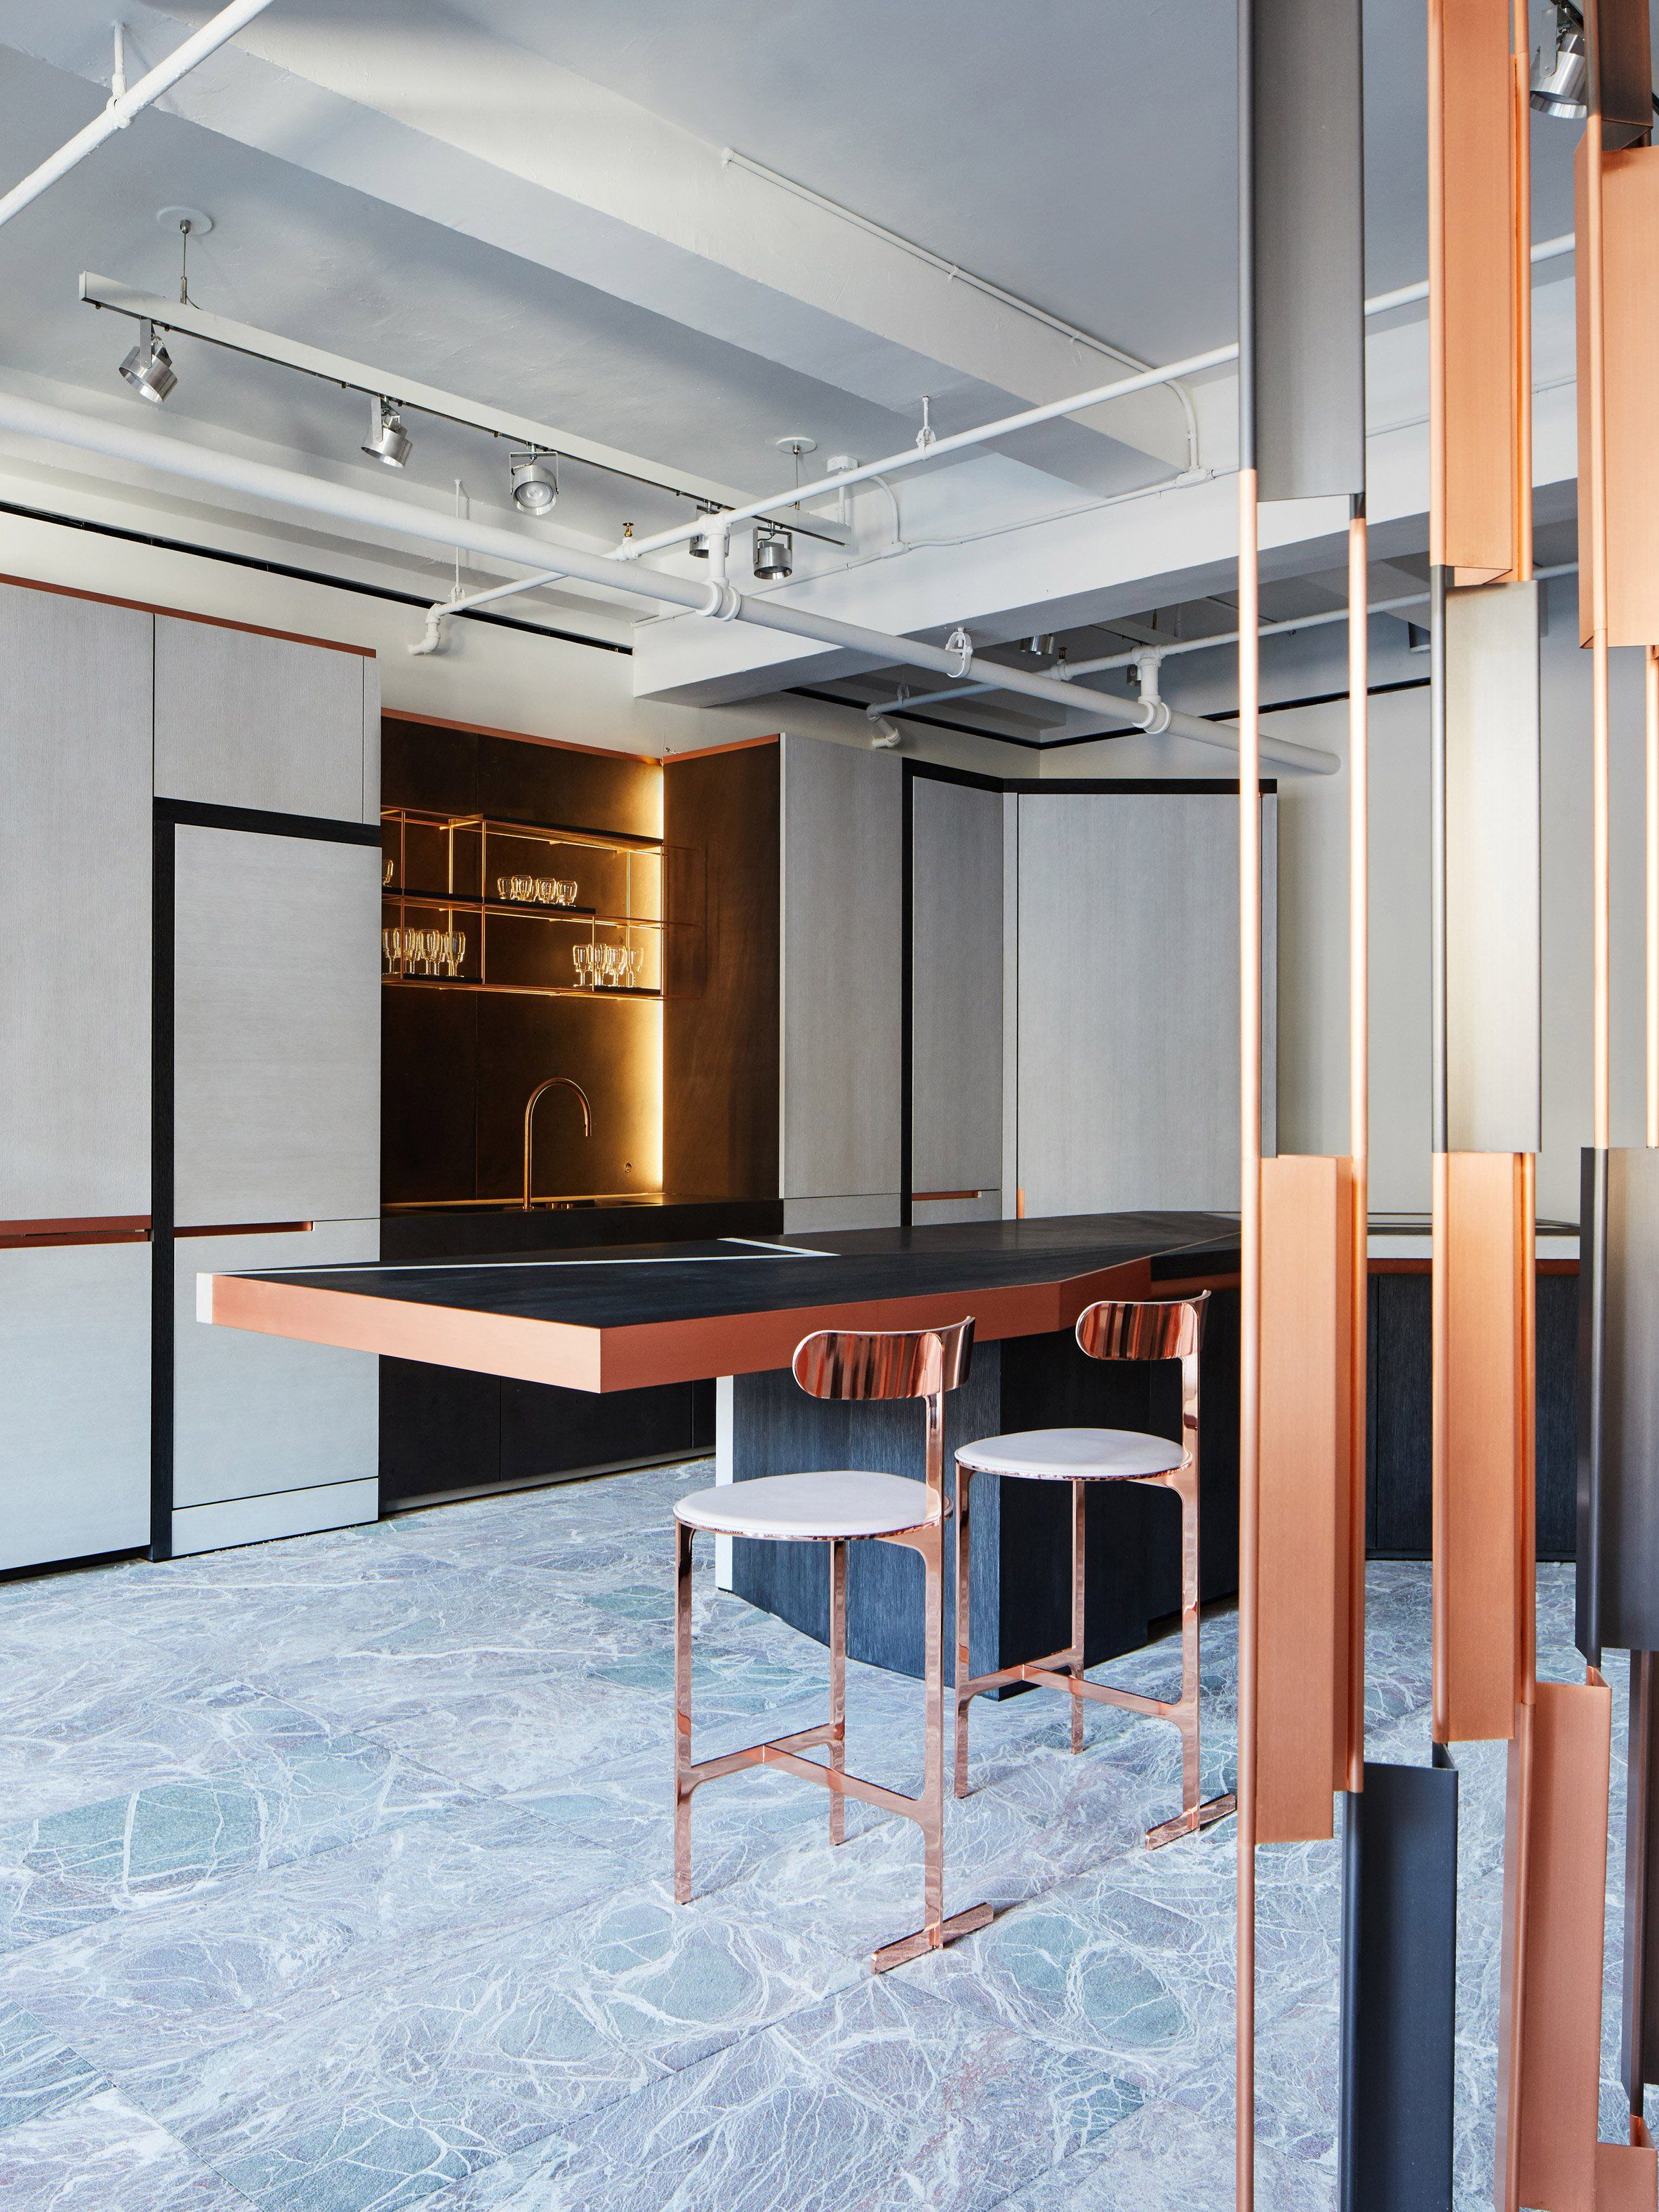 Design Retailer Avenue Road Has Added A New Floor To Its Showroom In New York Laid Out Like An Apartment Kitchen Design Trends Interior Design Magazine Design